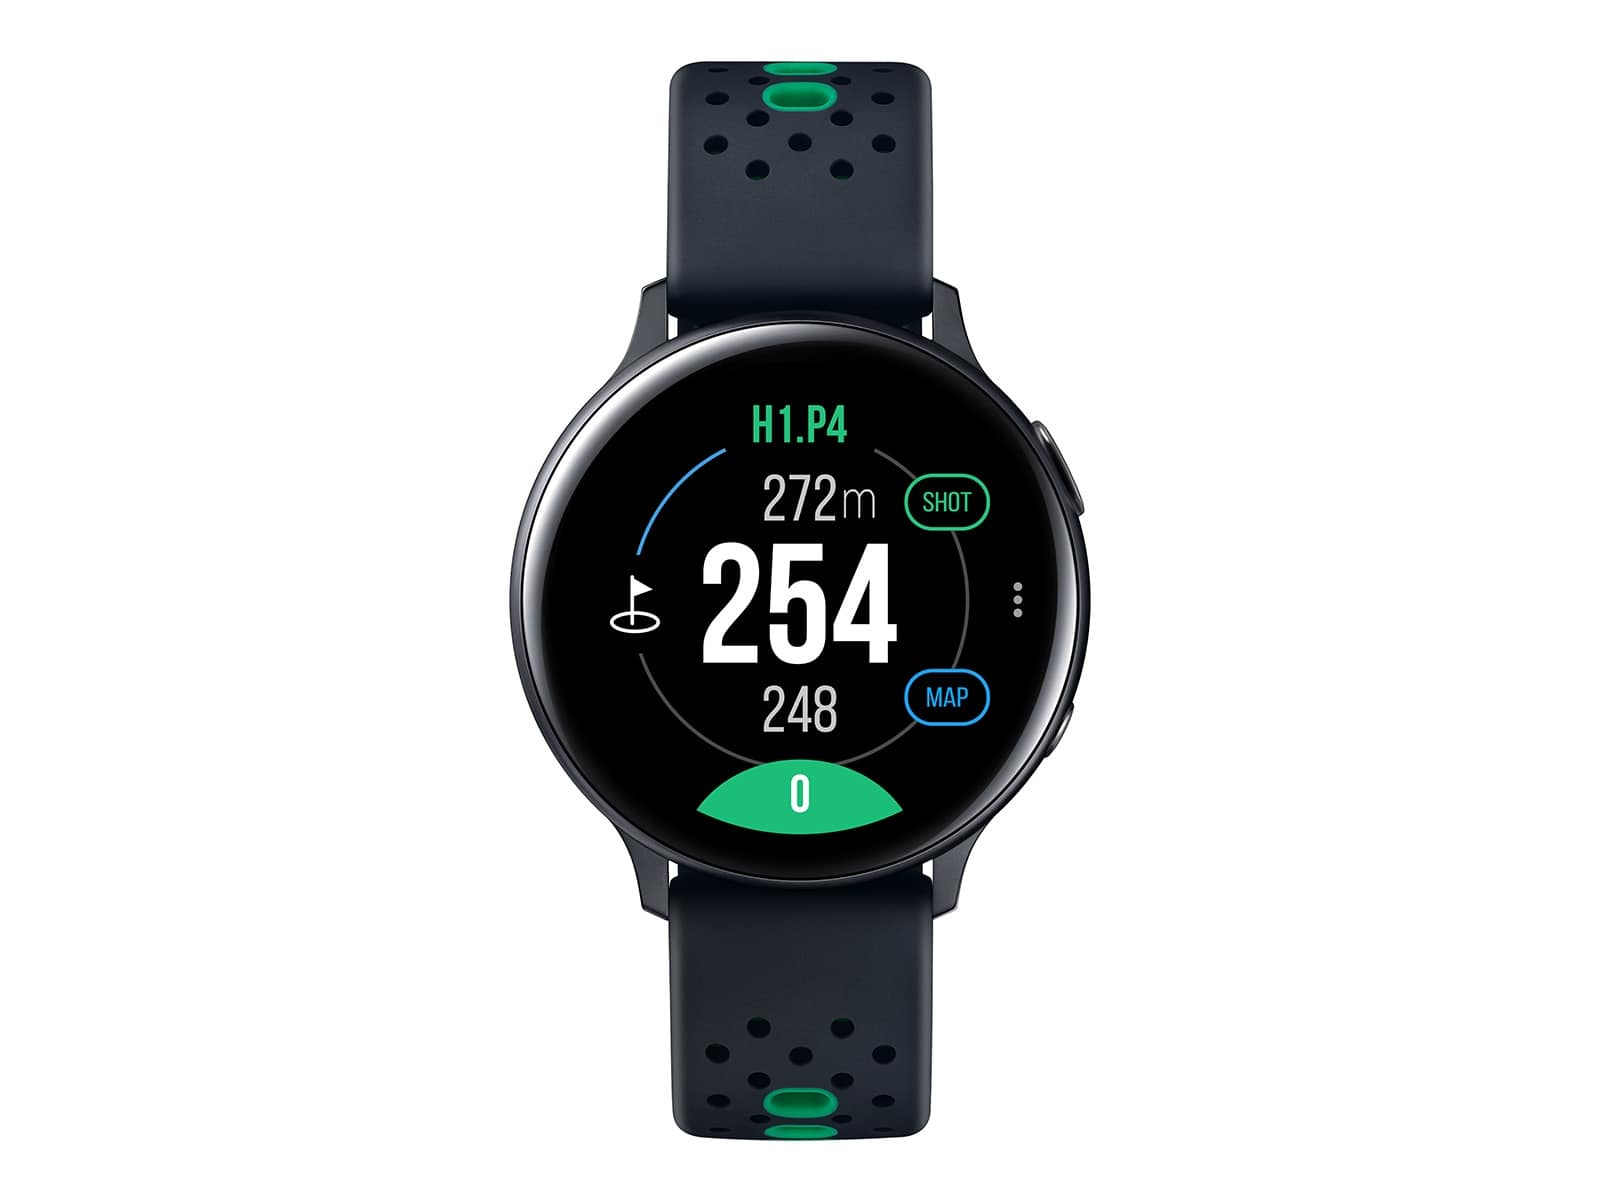 Samsung EPP Members: Samsung Galaxy Watch Active2 Golf Edition 44mm Smartwatch - $121.49 or less w/ Trade-In + Free Shipping @ Samsung.com